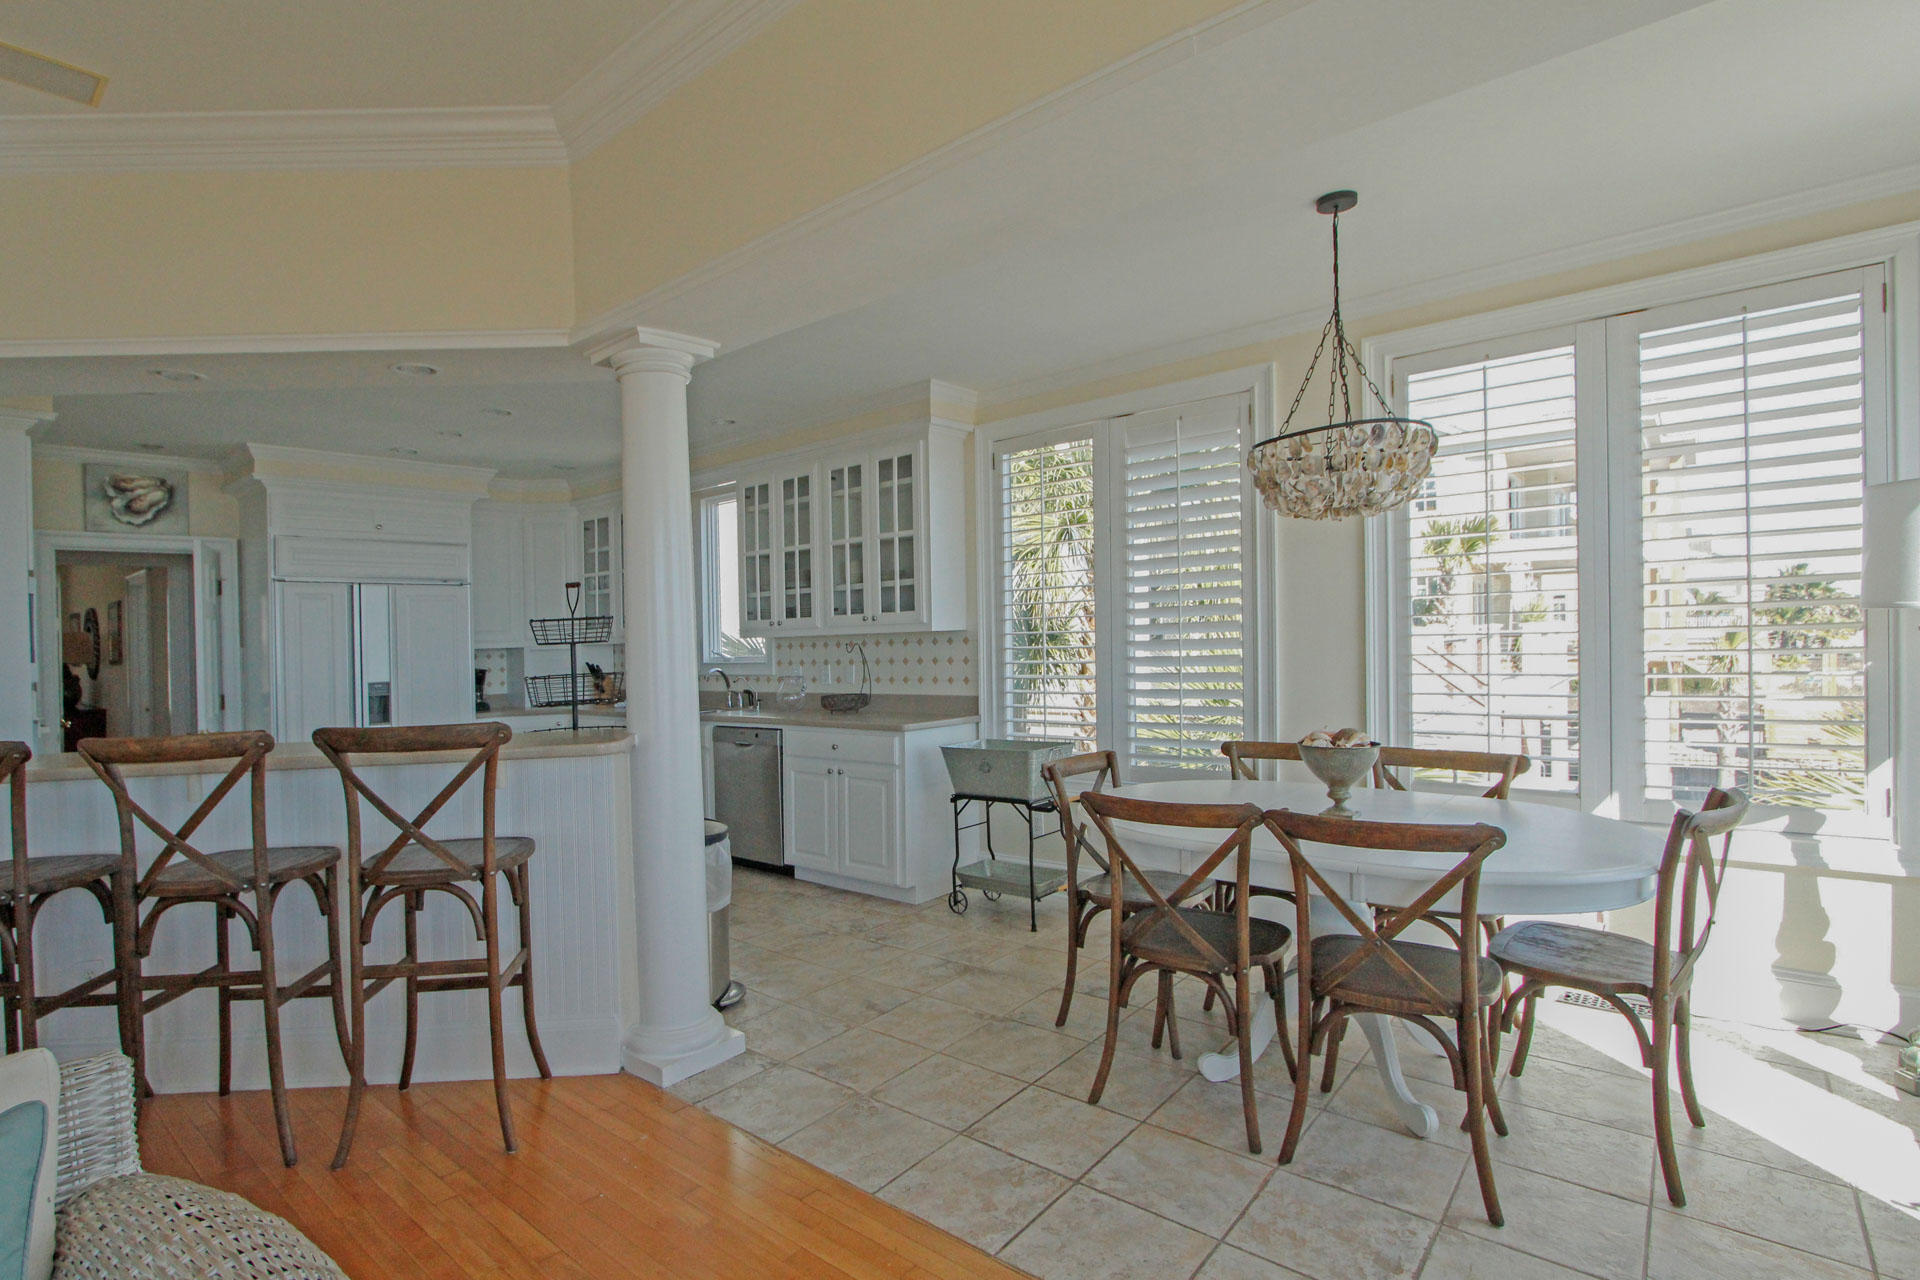 Isle of Palms Homes For Sale - 810 Ocean, Isle of Palms, SC - 19